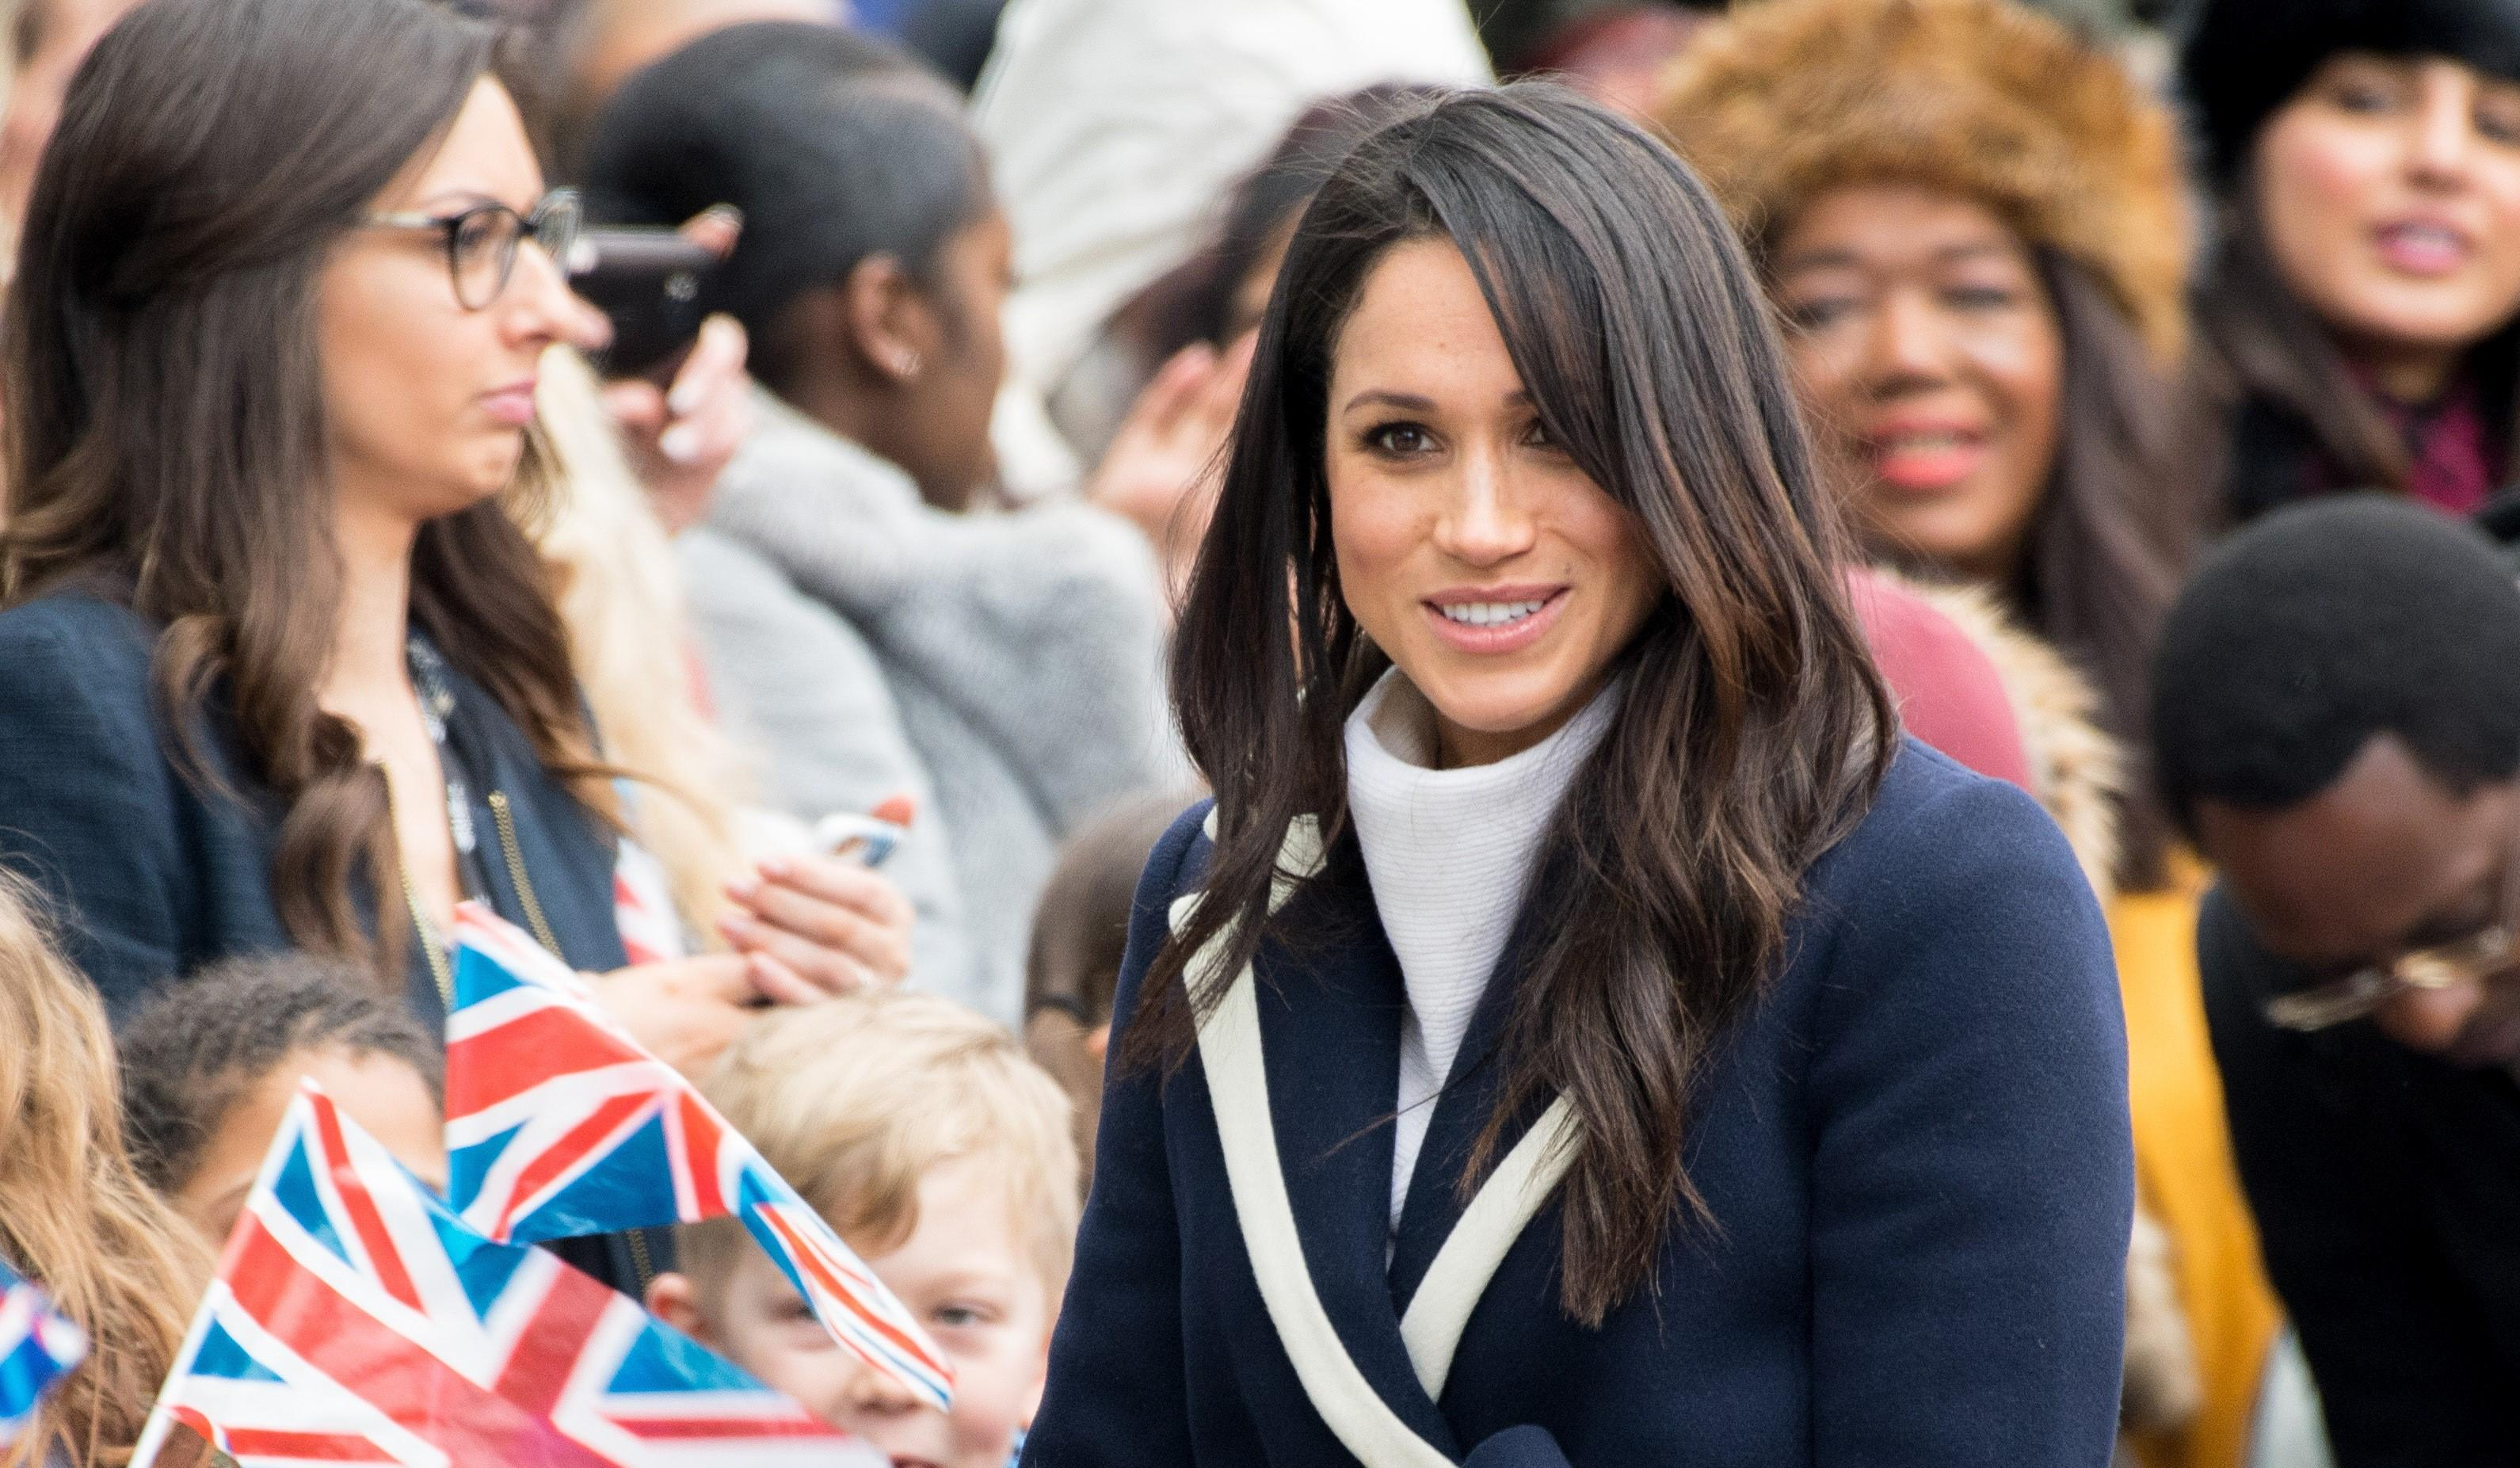 SUSSEXES BRACE FOR IMPACT: MEGHAN MARKLE'S HALF-SISTER SAMANTHA TO RELEASE 'THE DIARY OF PRINCESS PUSHY'S SISTER PART 1' MEMOIR THIS MONTH